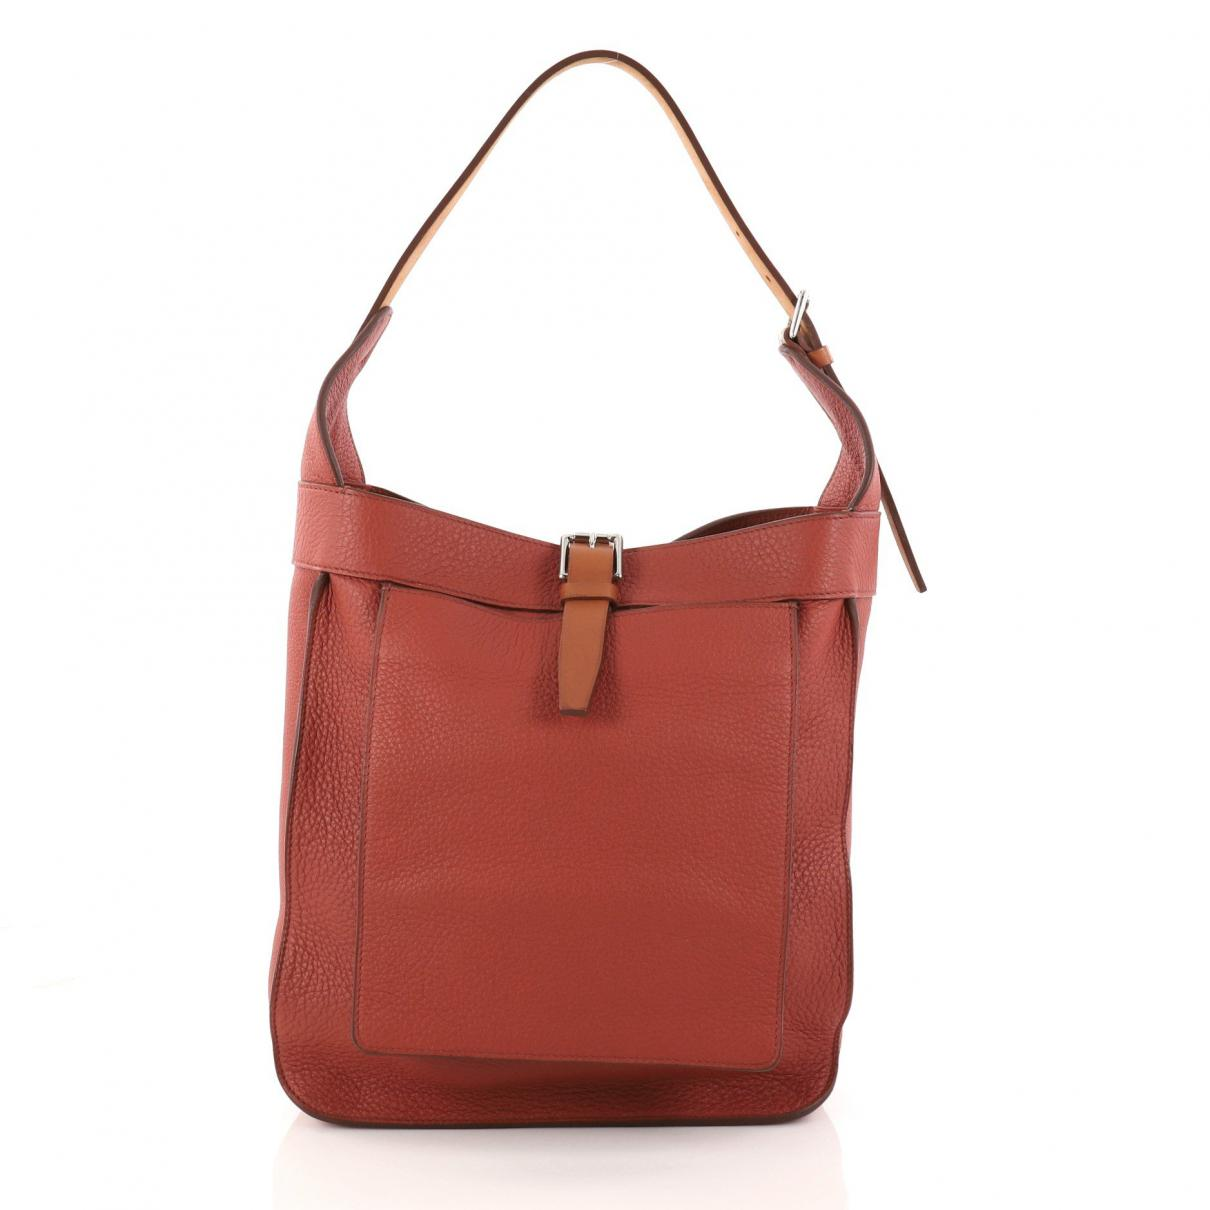 96337030e7b3 ... promo code for lyst hermès pre owned brown leather handbag in brown  a4eed 92513 sale hermes white ...